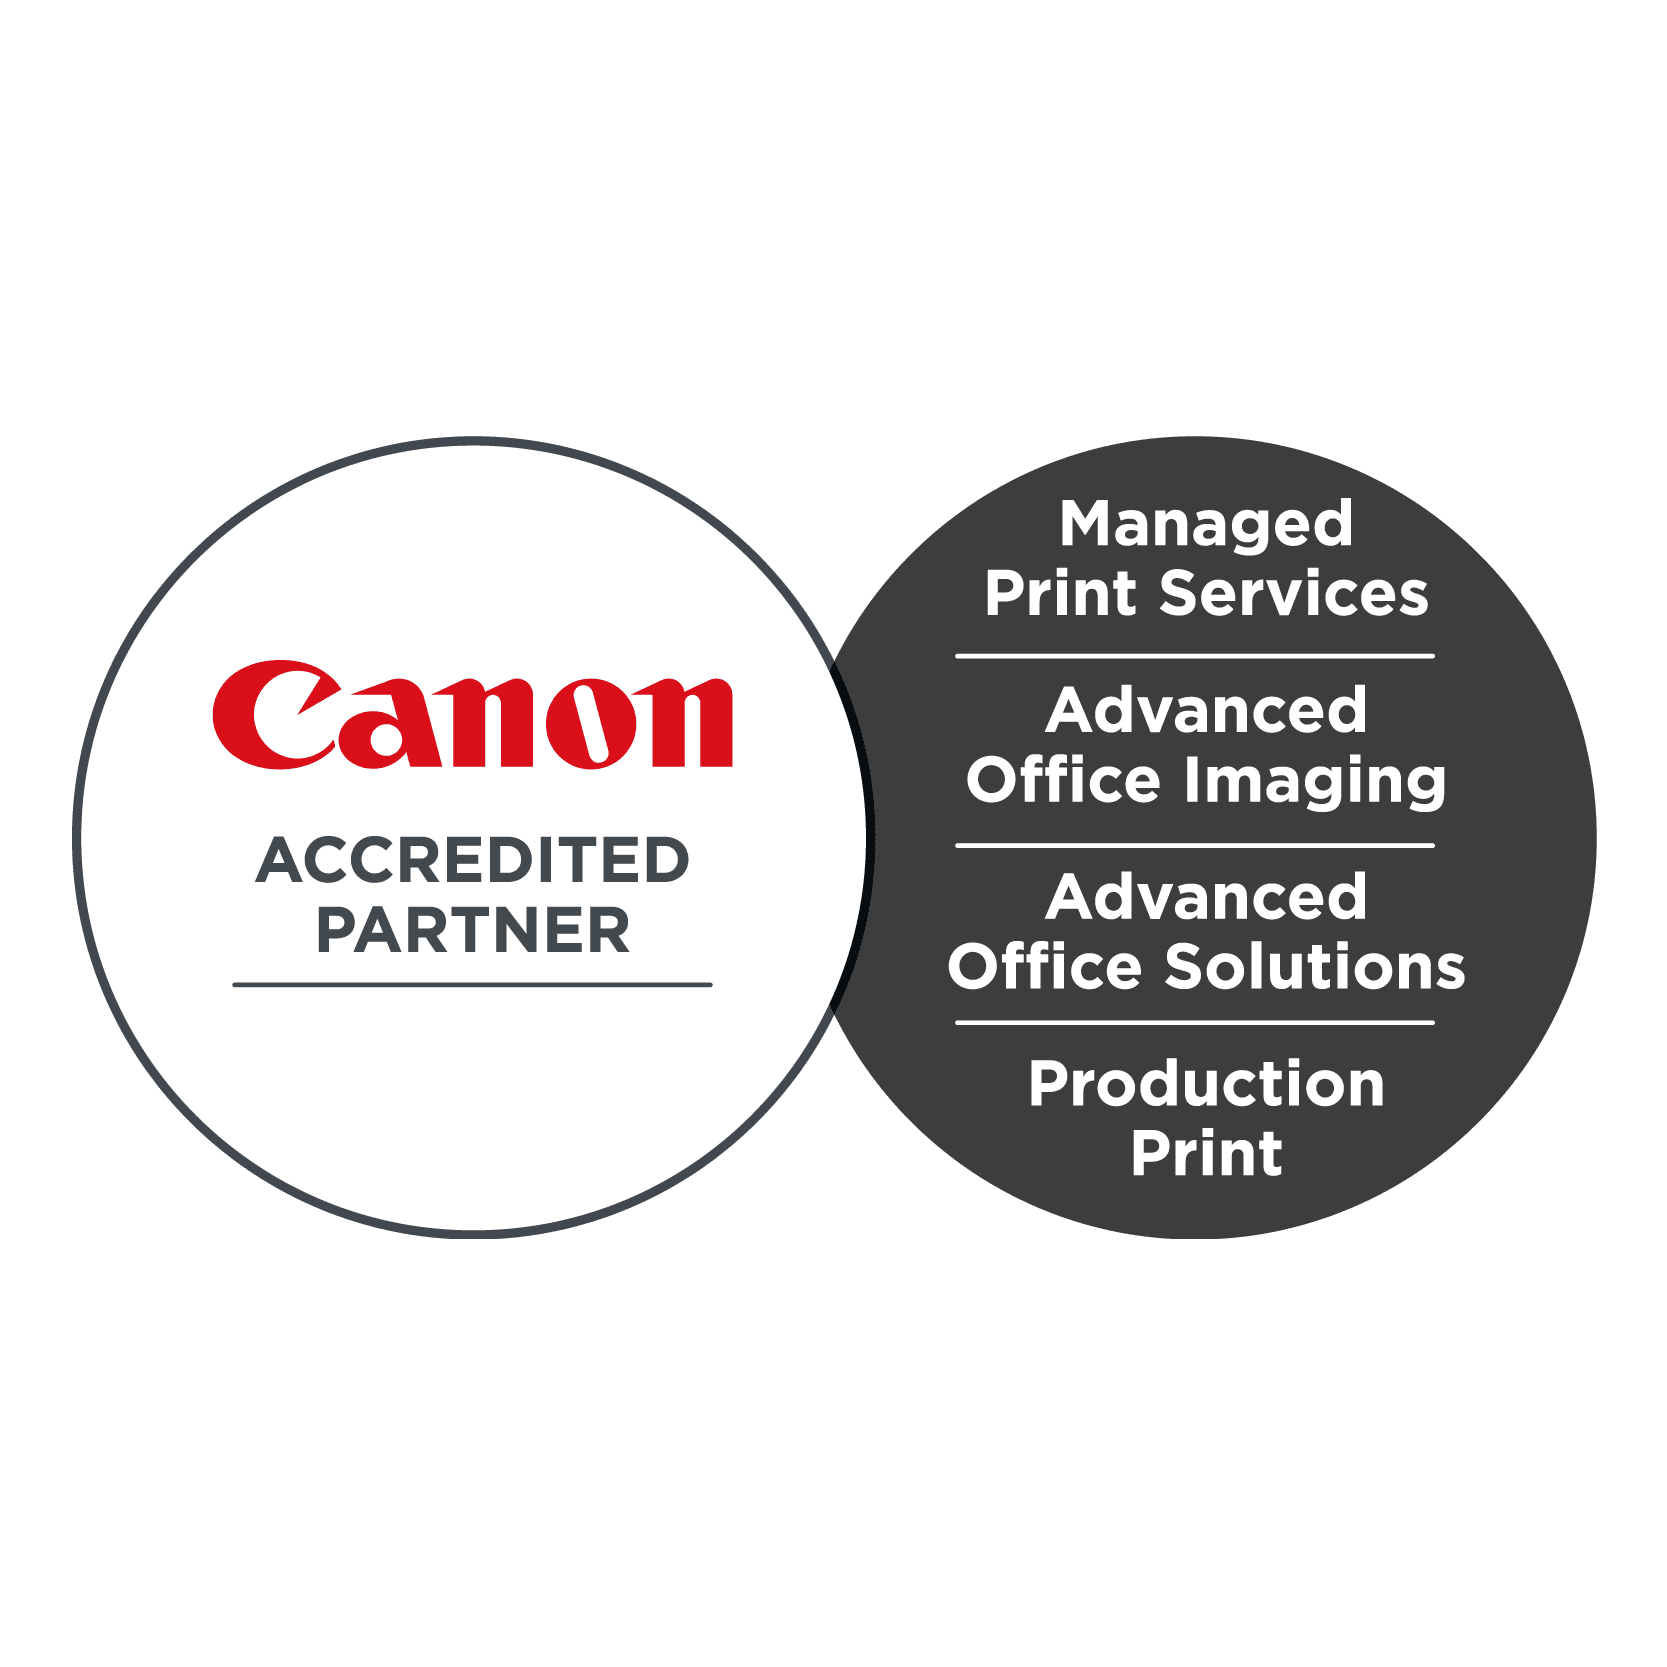 CanonPartner_CanonAccreditedPartner